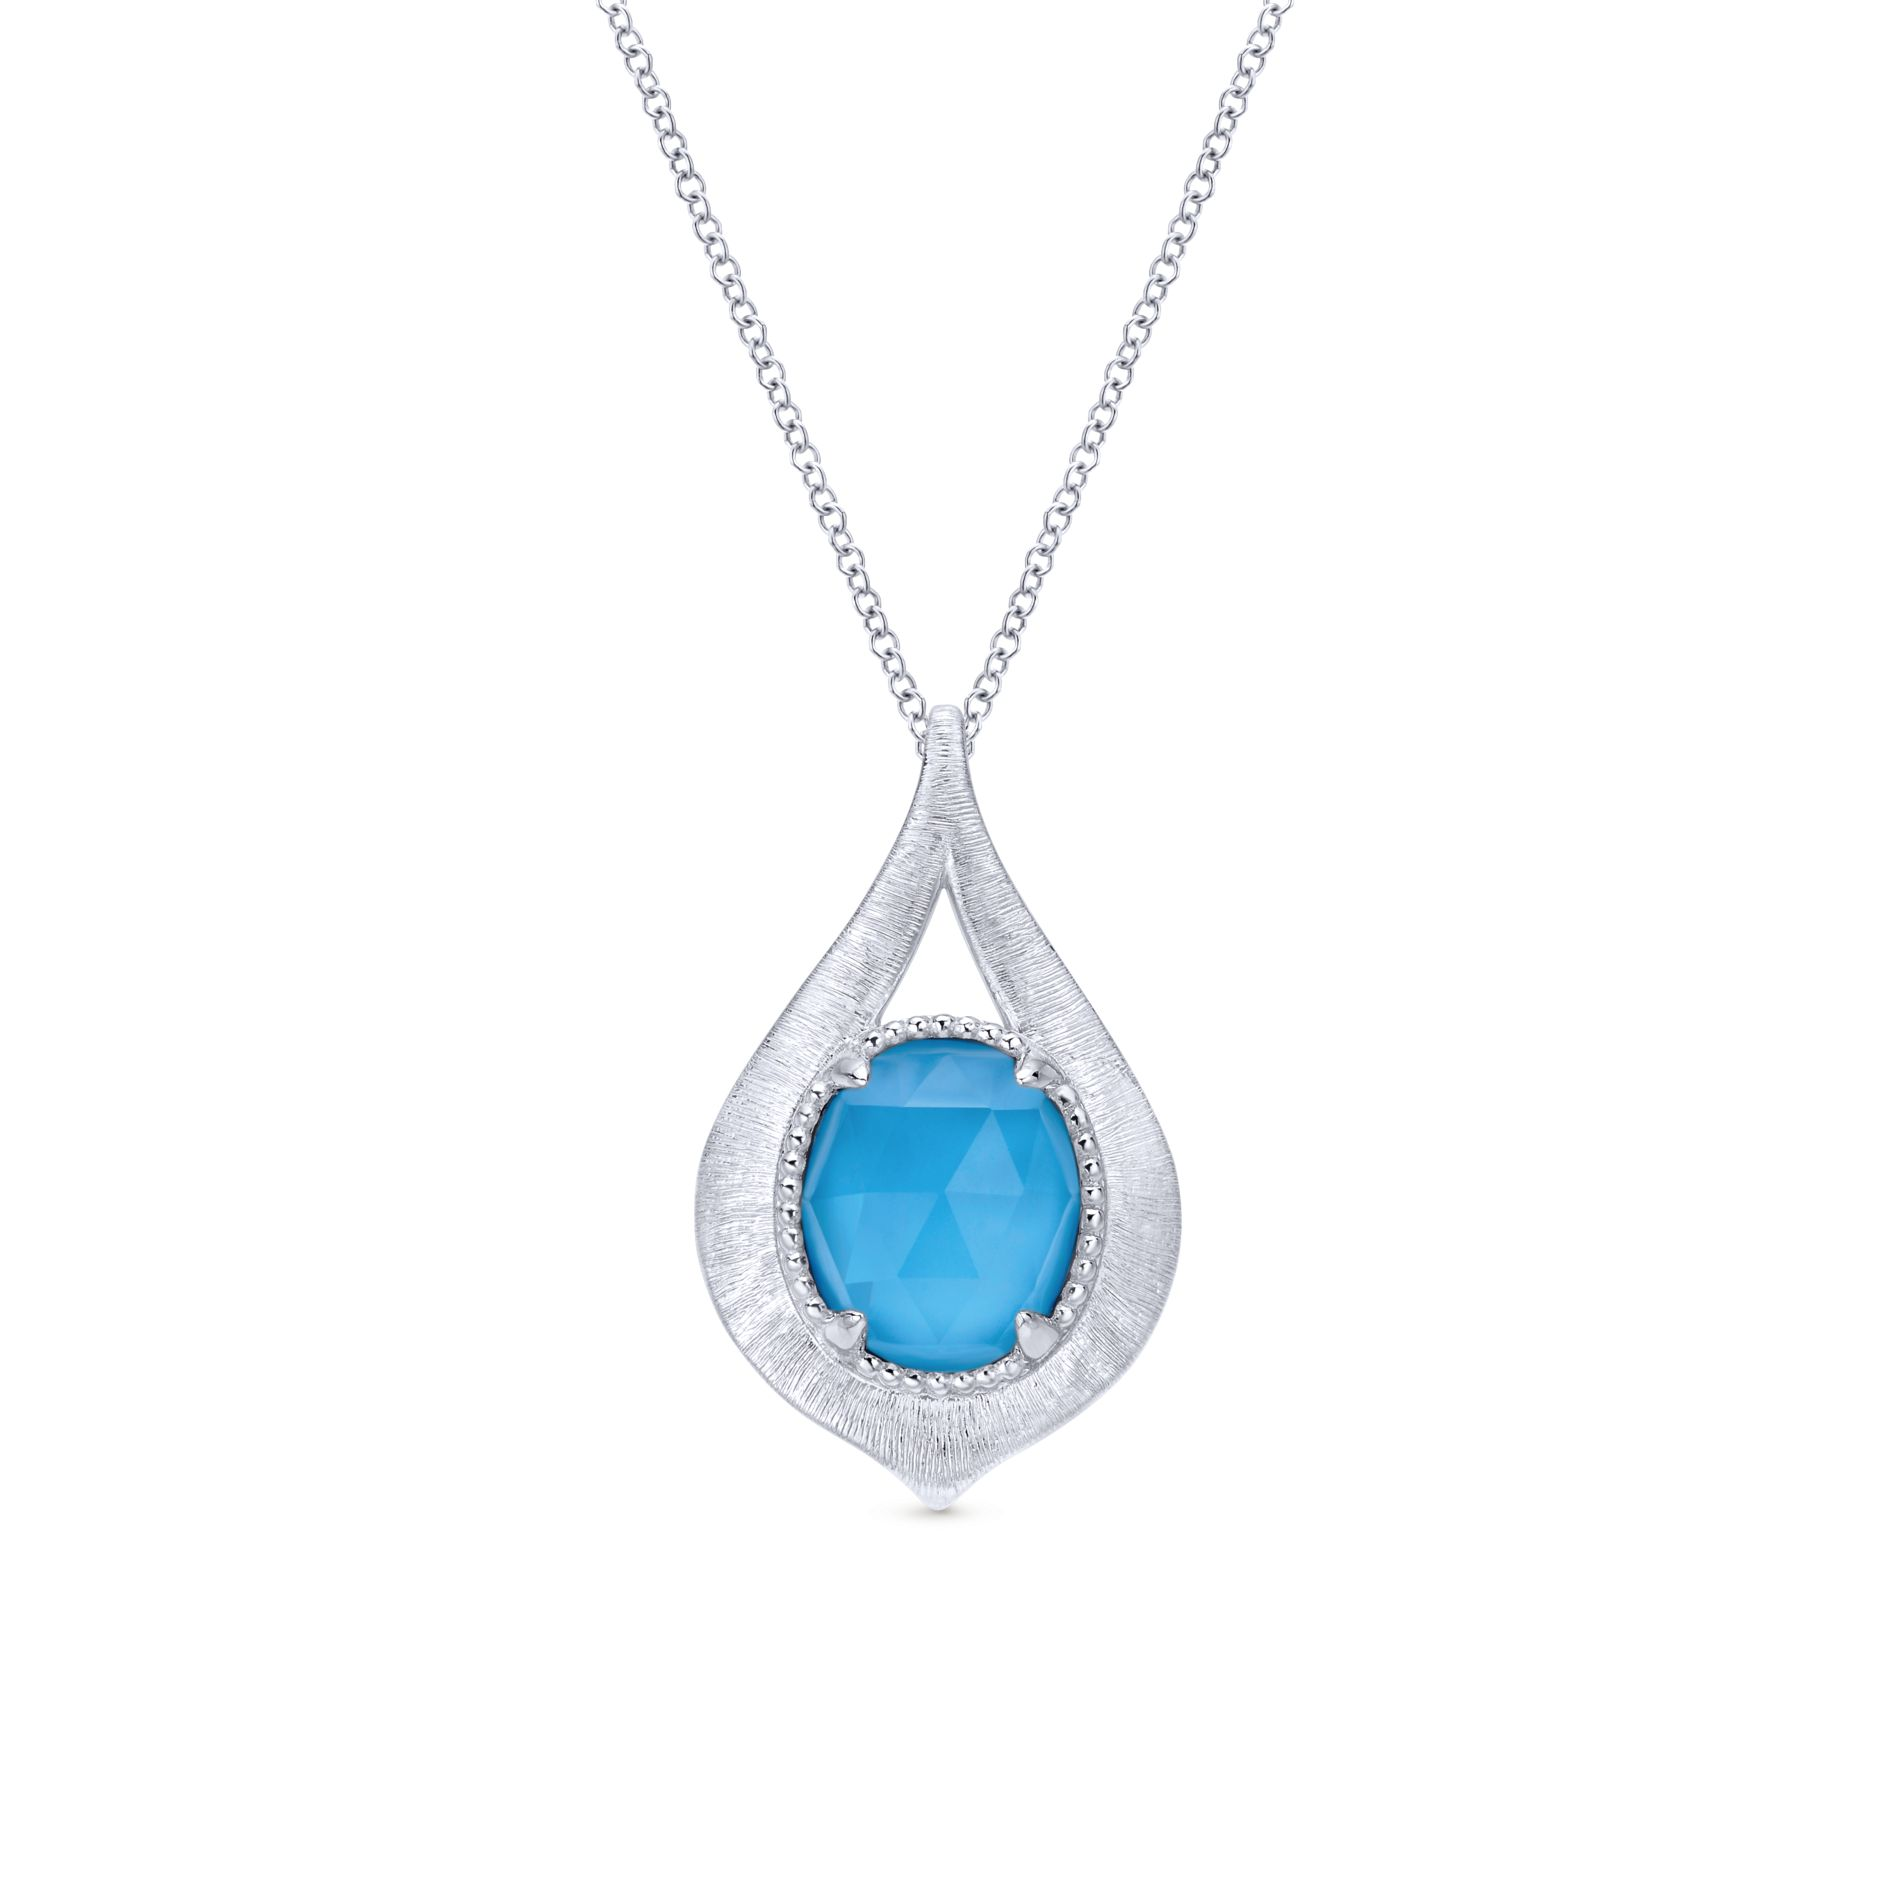 Necklaces - SILVER FASHION ROCK CRYSTAL&TURQUOISE NECKLACE